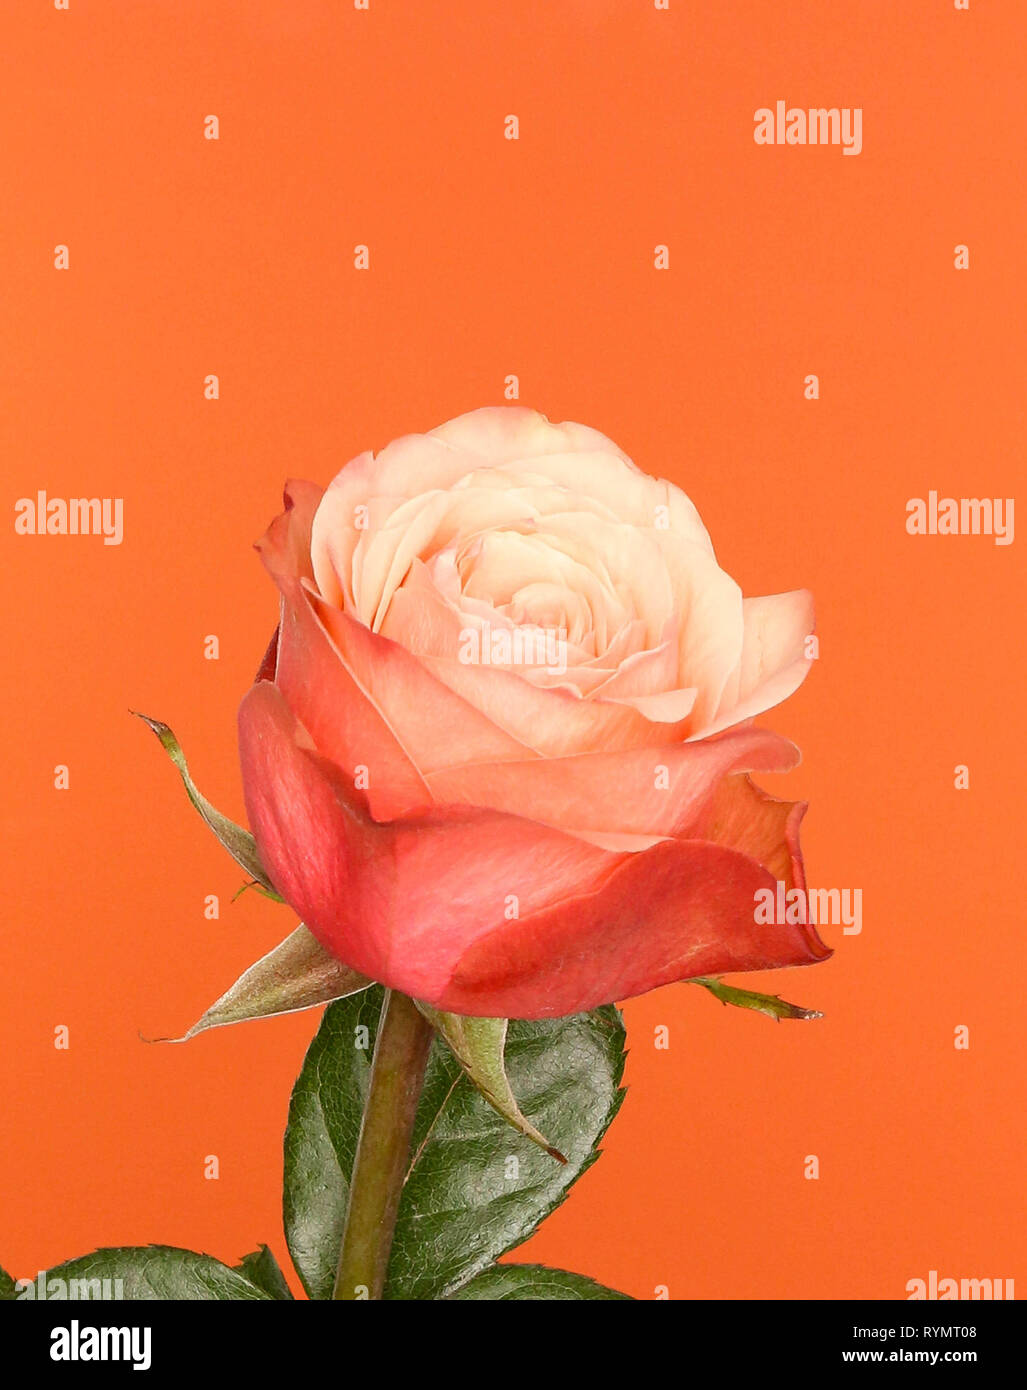 Pink and orange rose with a hint of living coral, on an orange background. - Stock Image